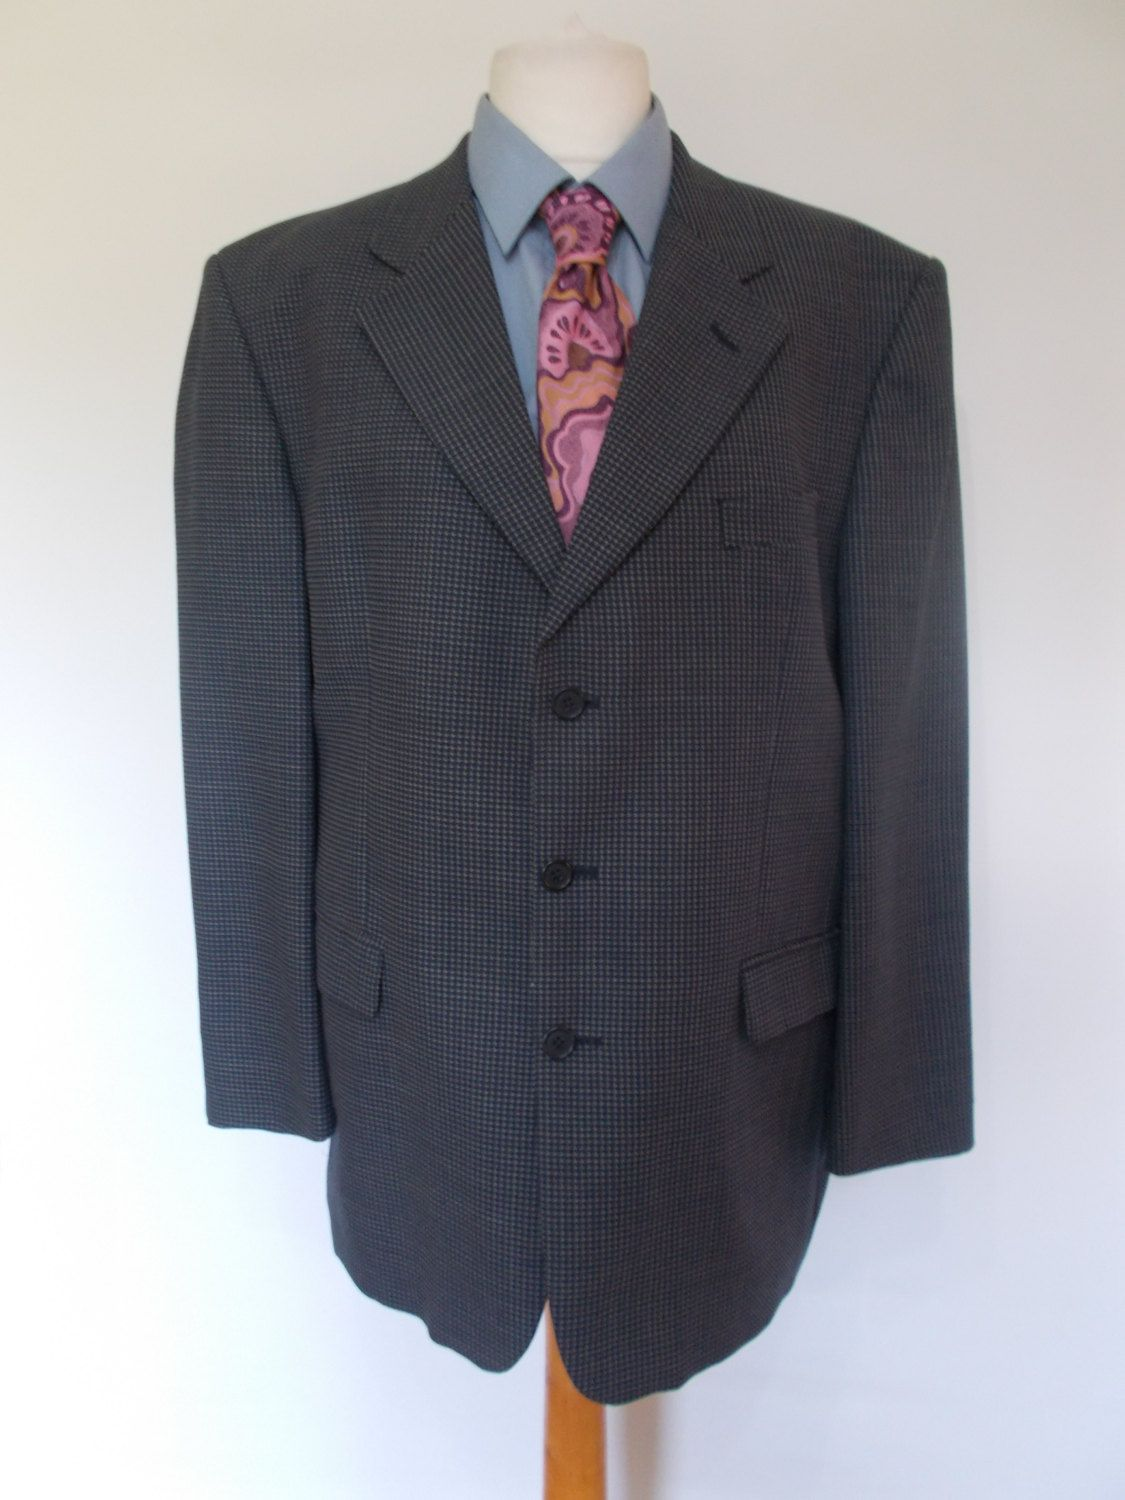 Mens jacket marks and spencer - Vintage 90s Mens Jacket By Marks Spencer Wool Mix Navy Check Blazer With No Back Vents 44 Chest Large